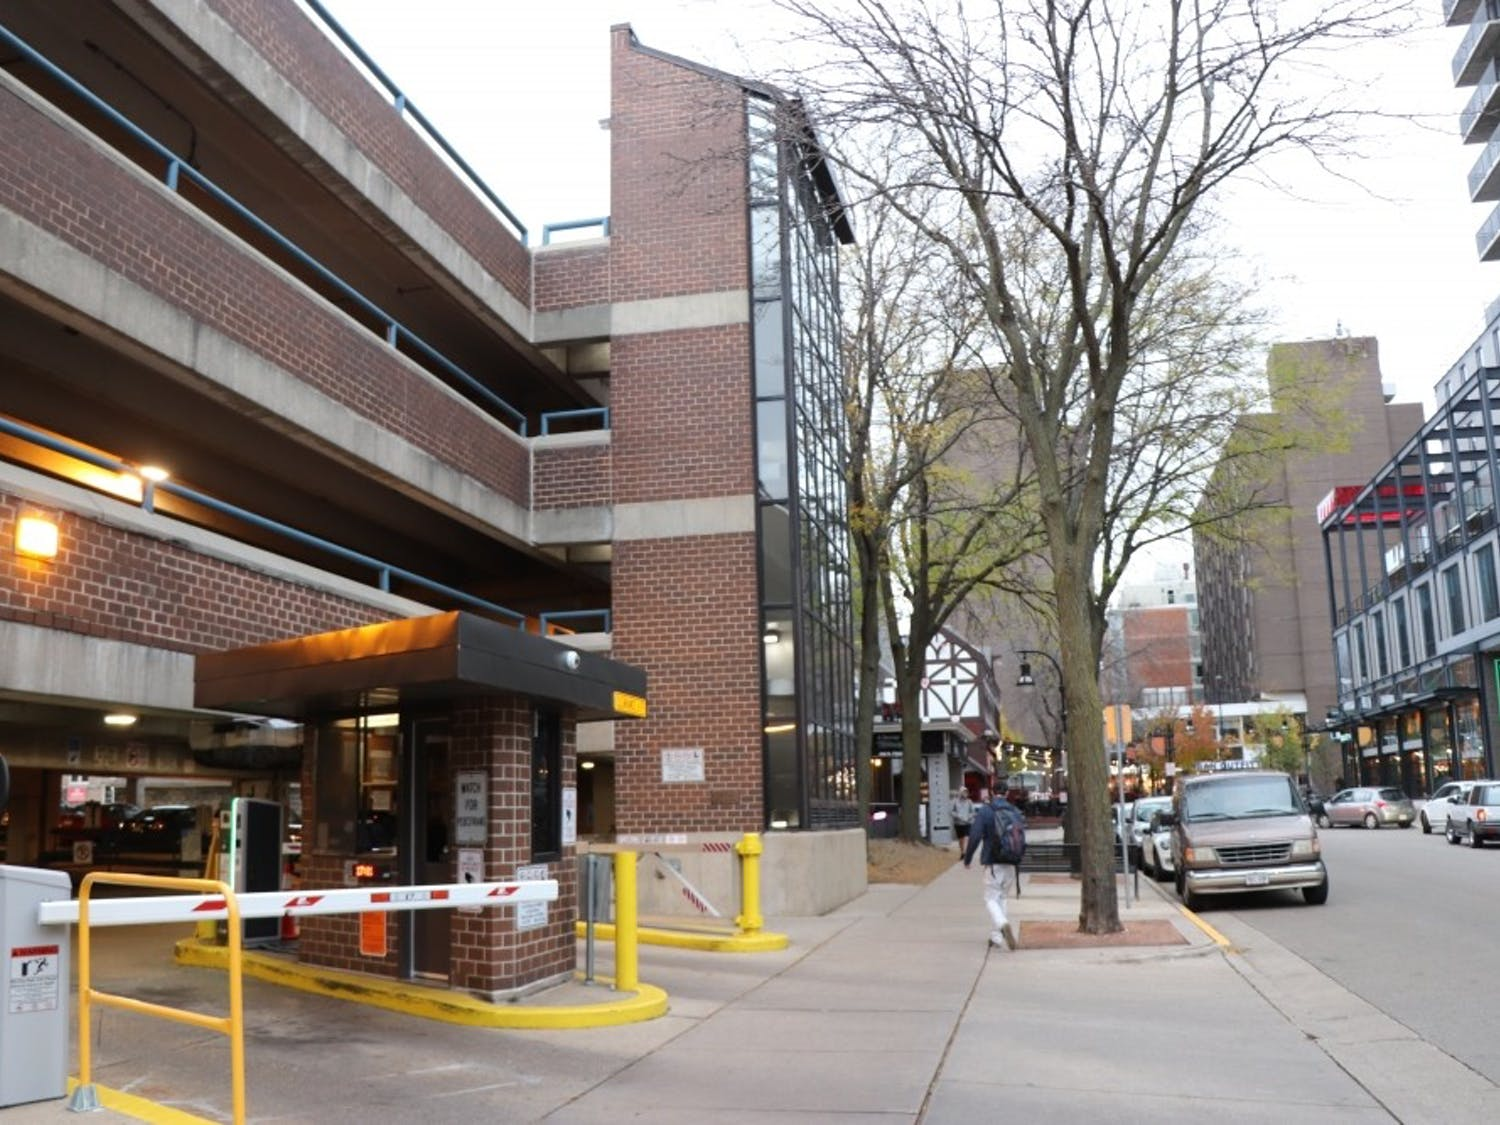 A Madison woman was arrested Monday for shooting and killing a man in a State Street parking ramp over the weekend.